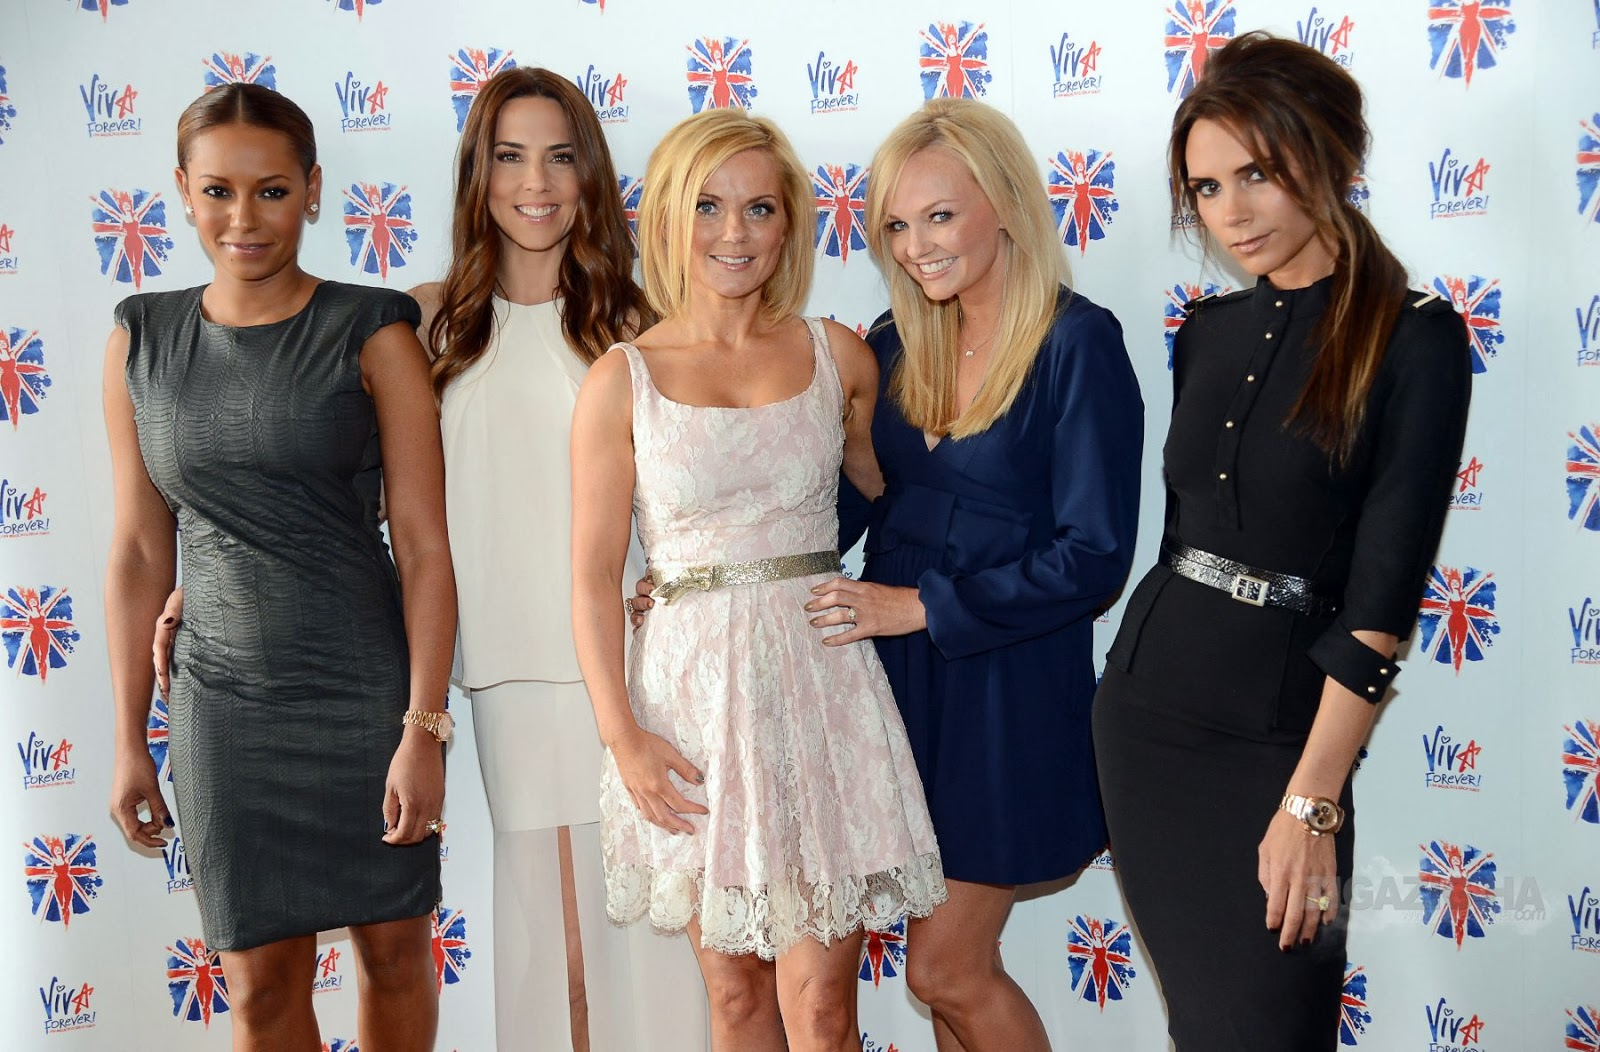 Above the girls at the Viva forever musical premiere I think Mel C (sporty spice) looks really pretty  sc 1 st  paper lantern & paper lantern: The Spice Girls